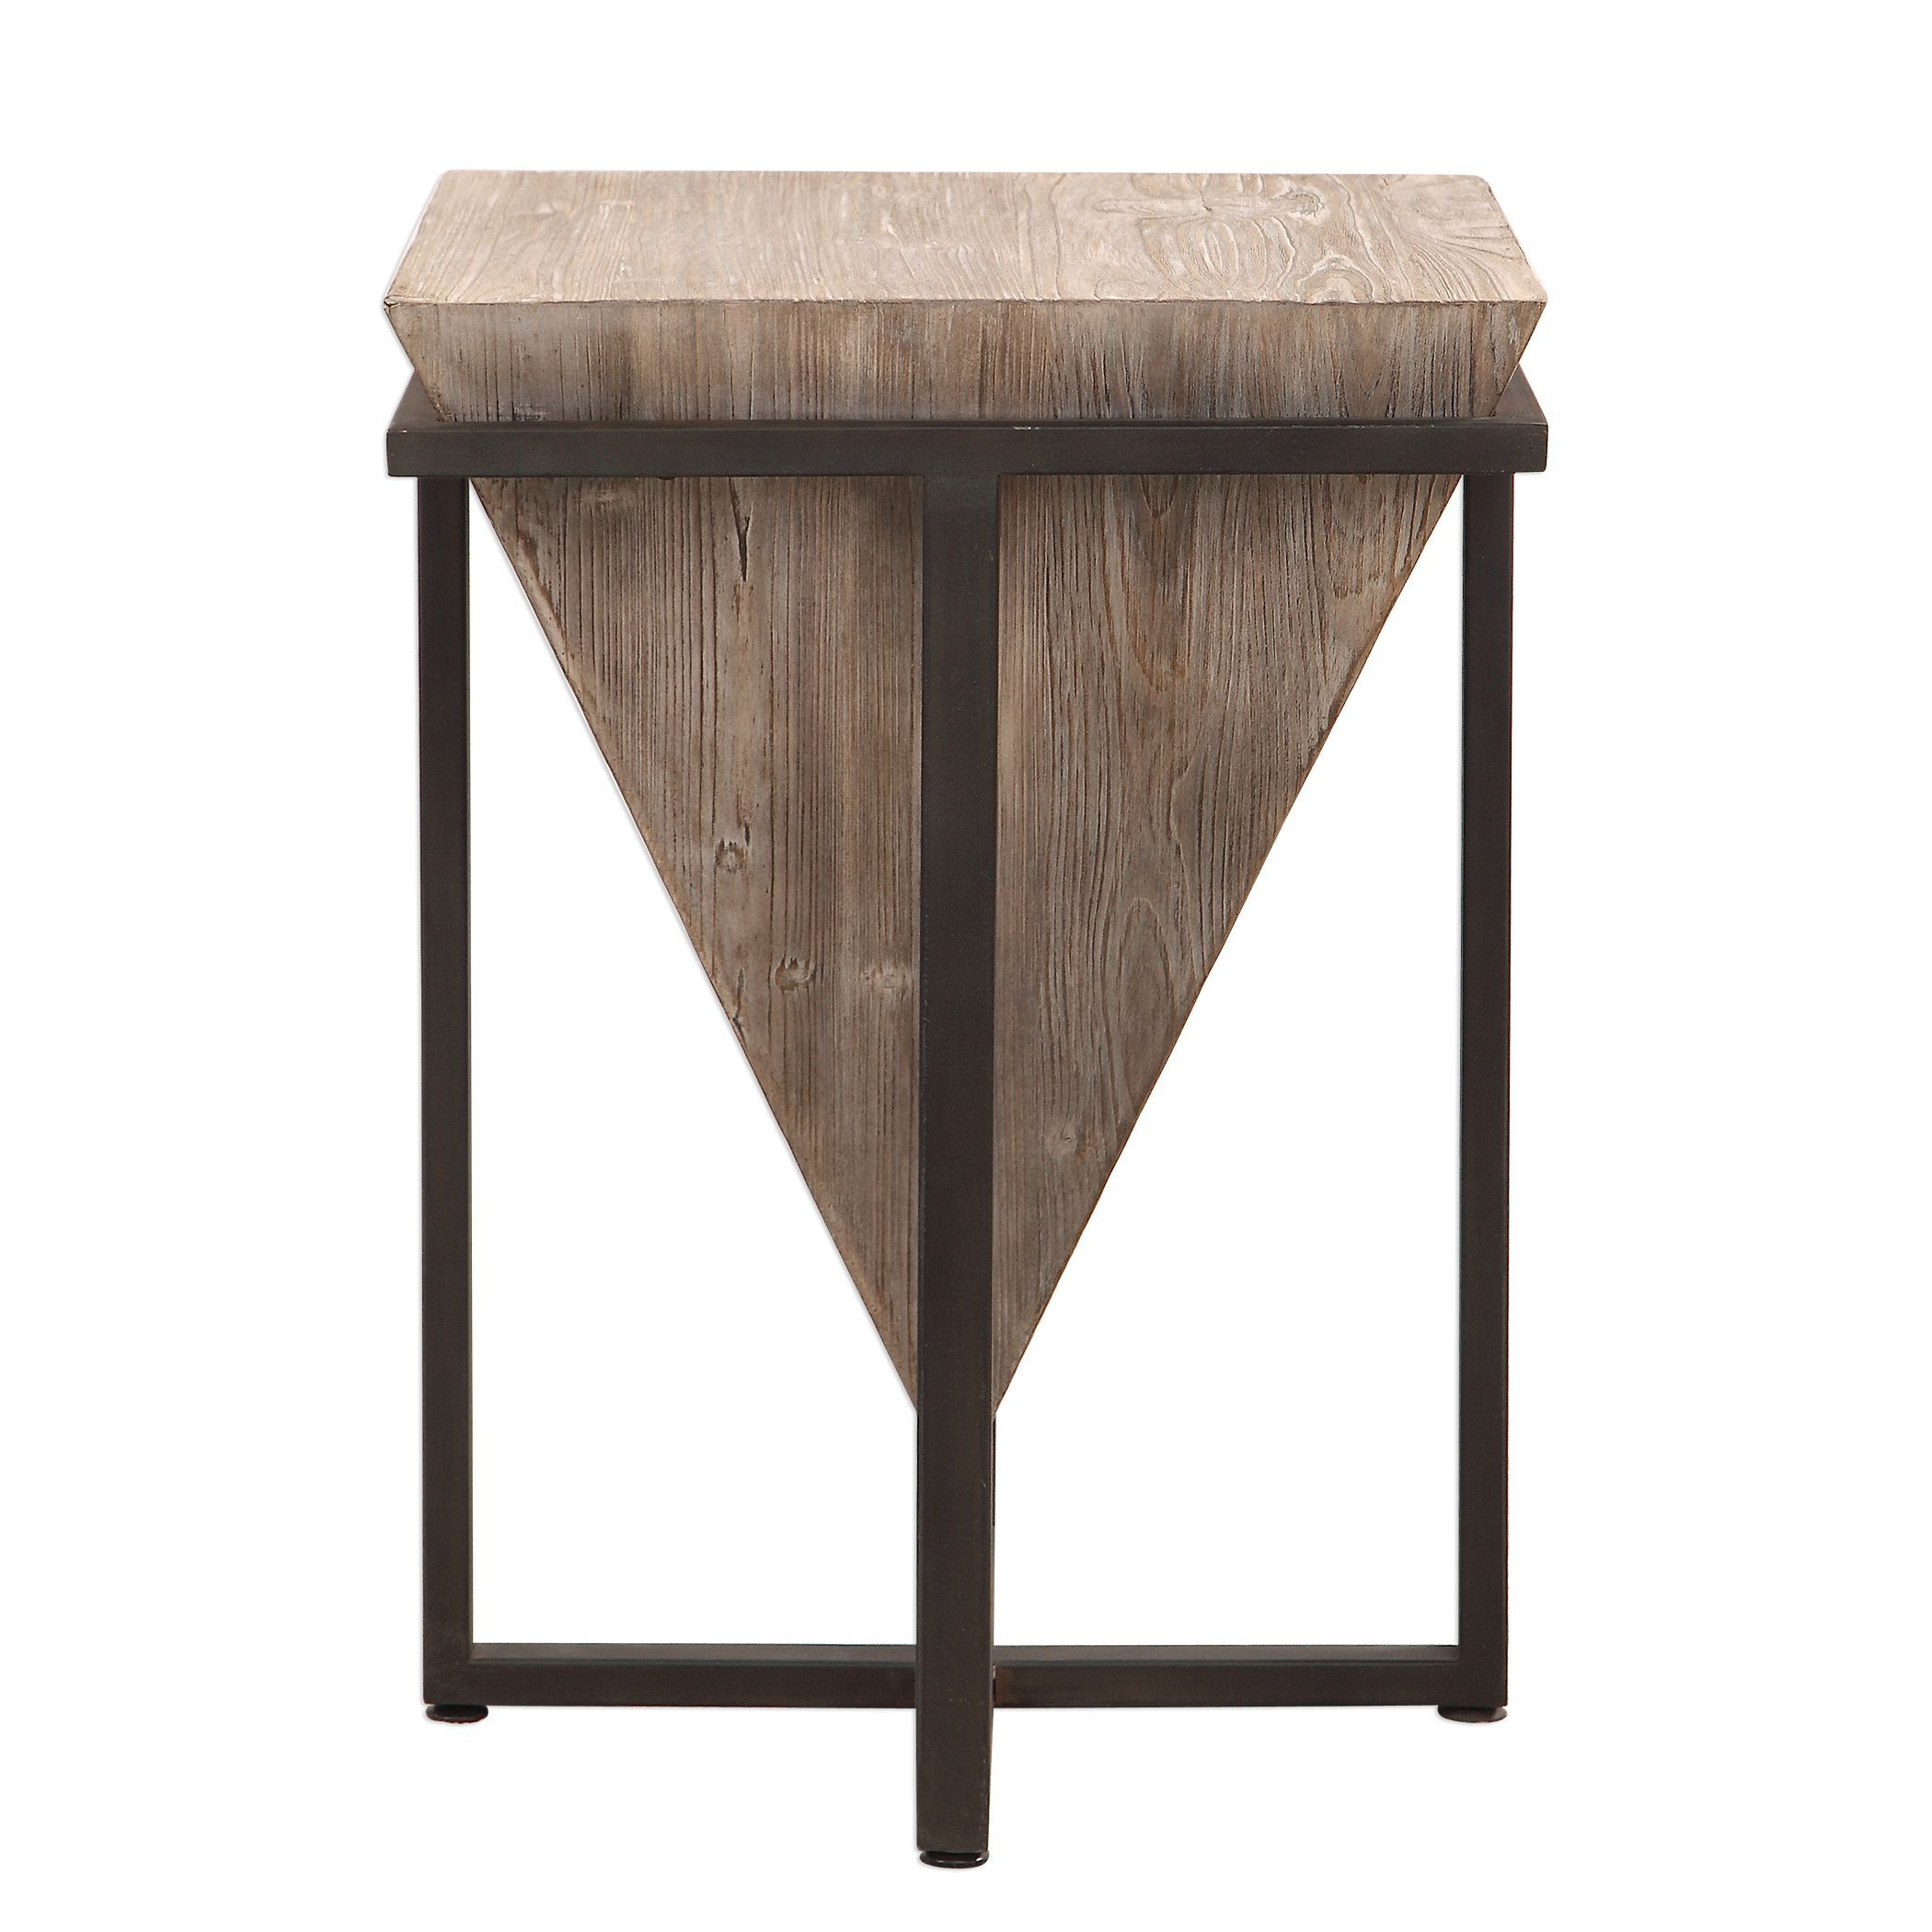 bertrand contemporary gray wash wood accent table uttermost kohls gift registry wedding pier imports furniture unique coffee ideas outdoor occasional tables best modern west elm